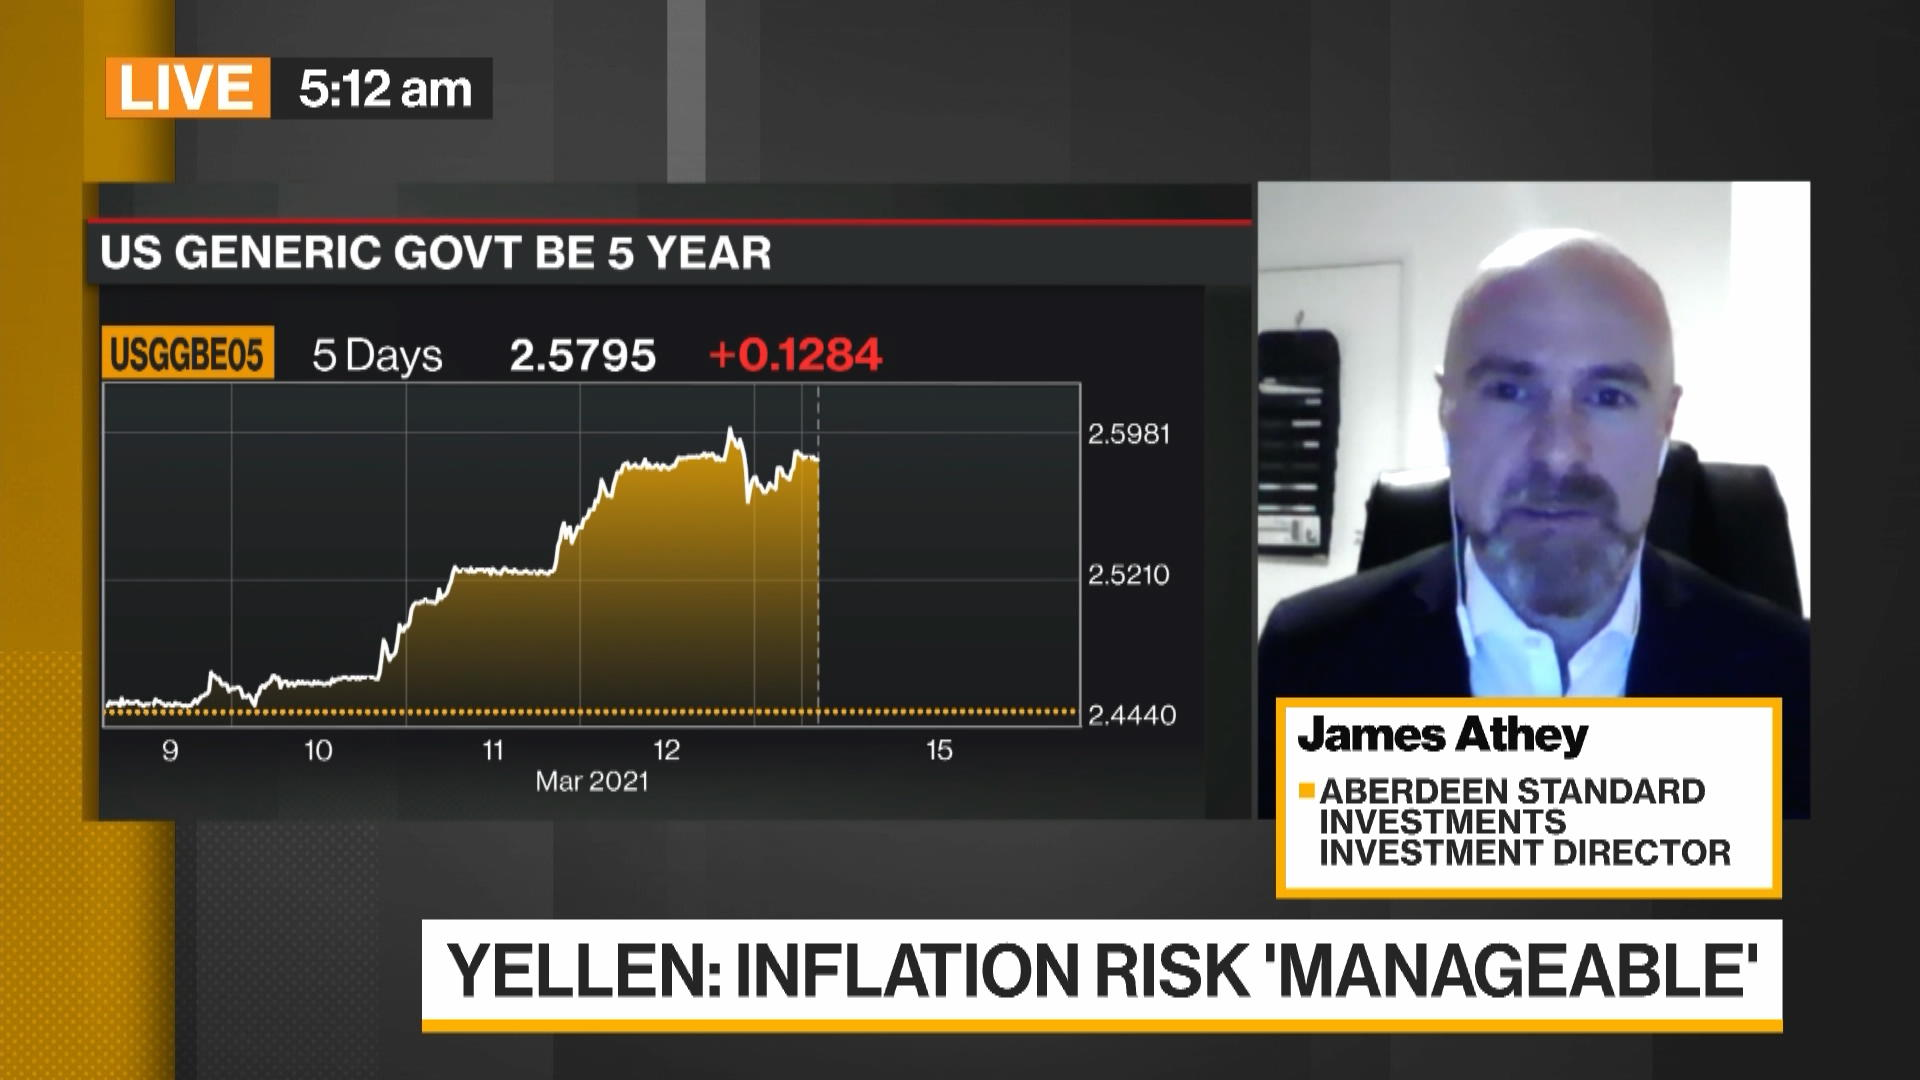 Aberdeen's Athey: Market's Consensus Is an Unstable Equilibrium